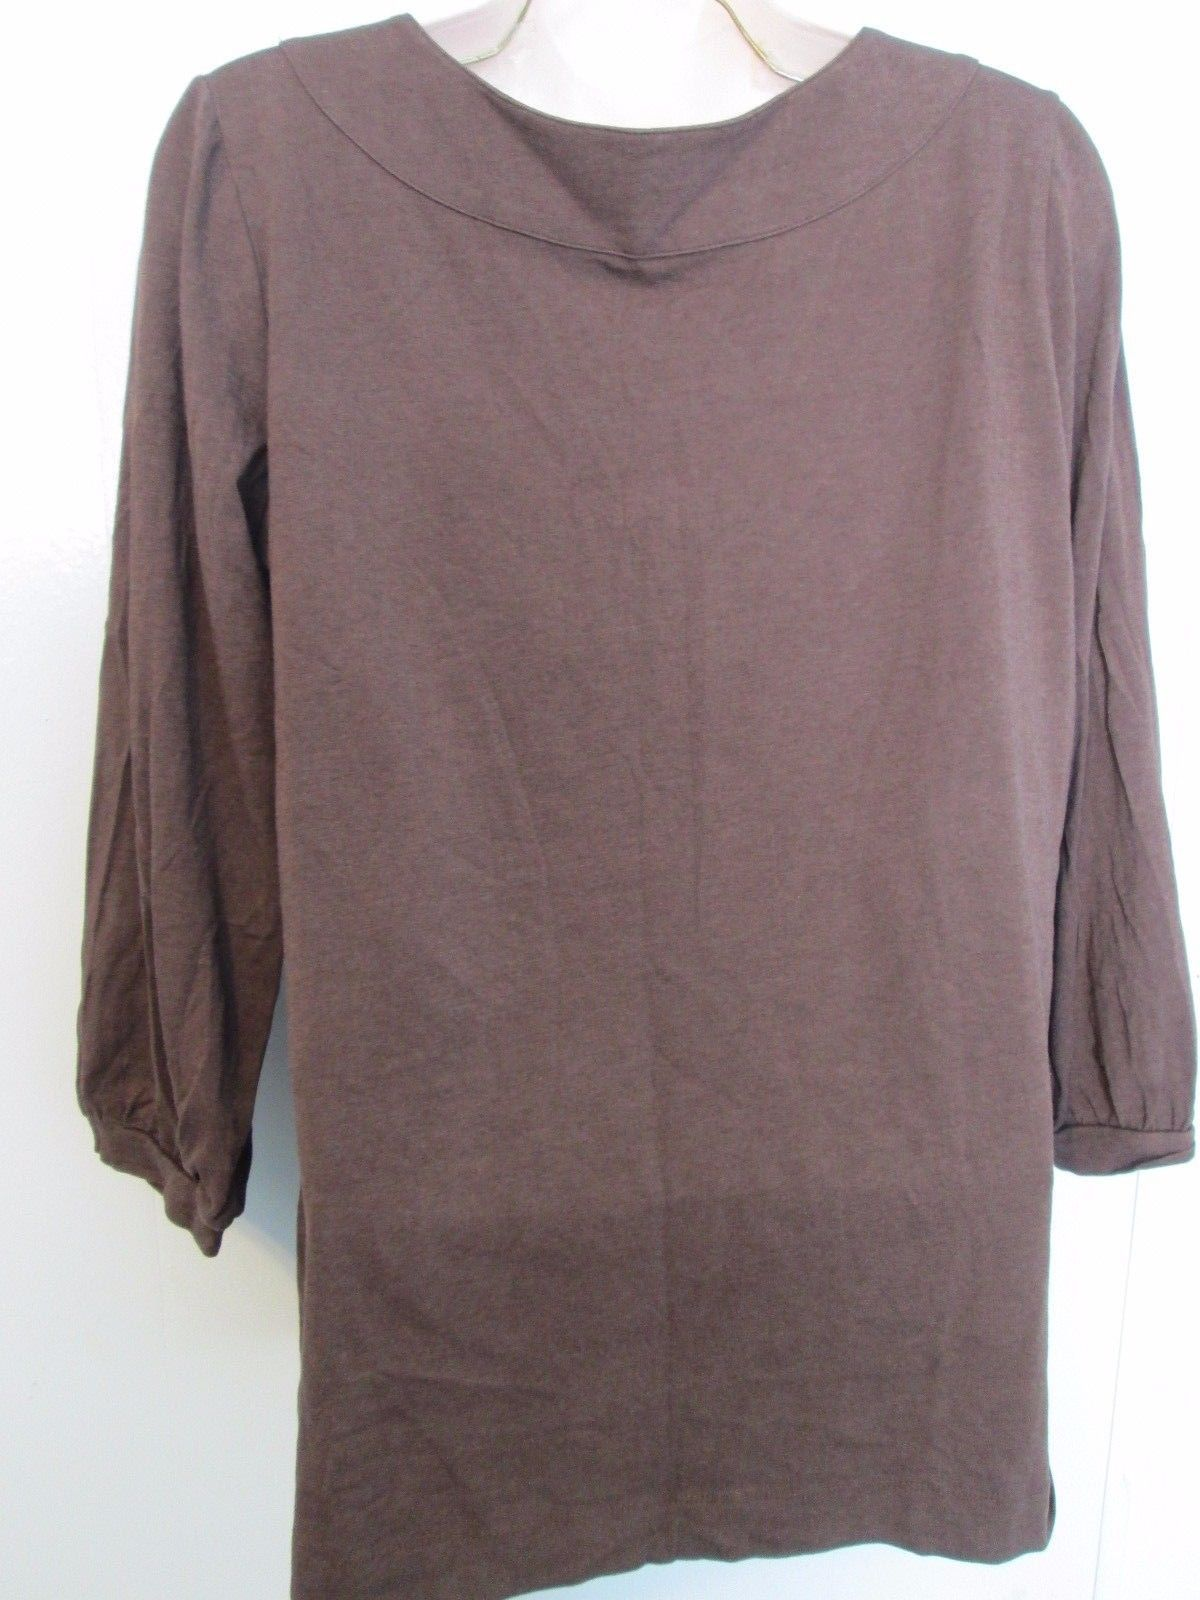 Women's brown 3/4 sleeve top Size L by A.N.A.  MGRA038